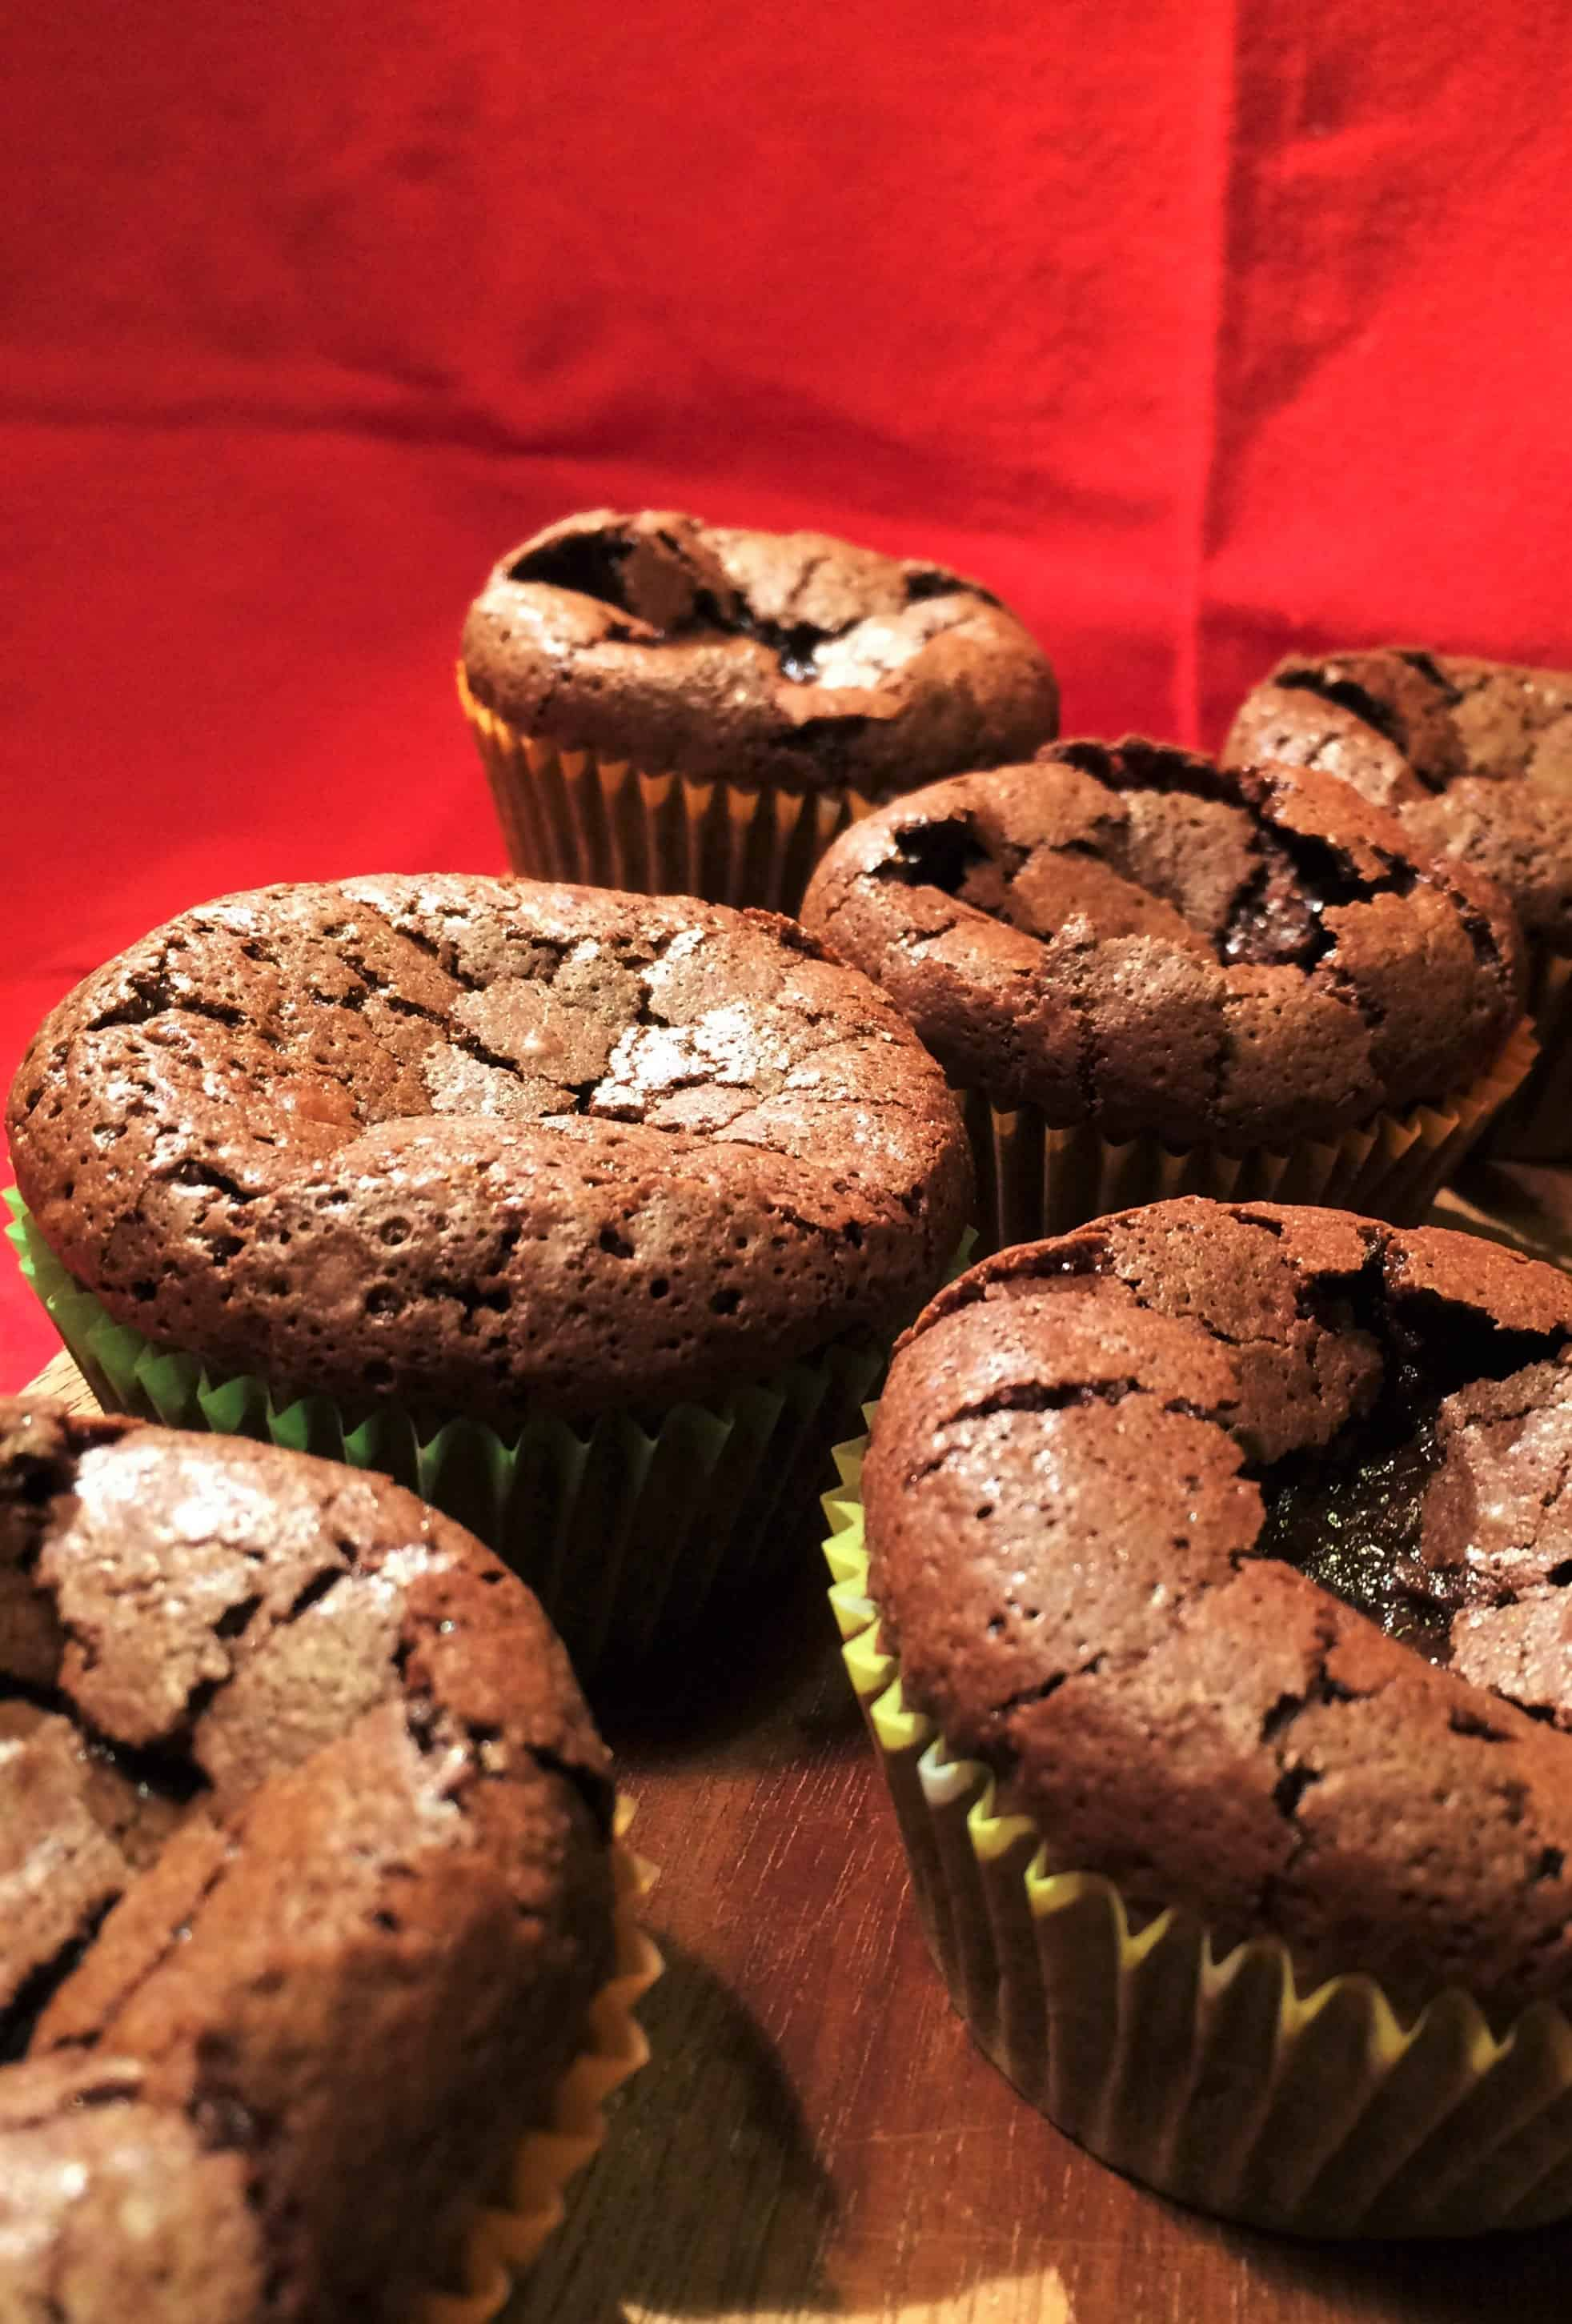 chocolate-muffins-close-look